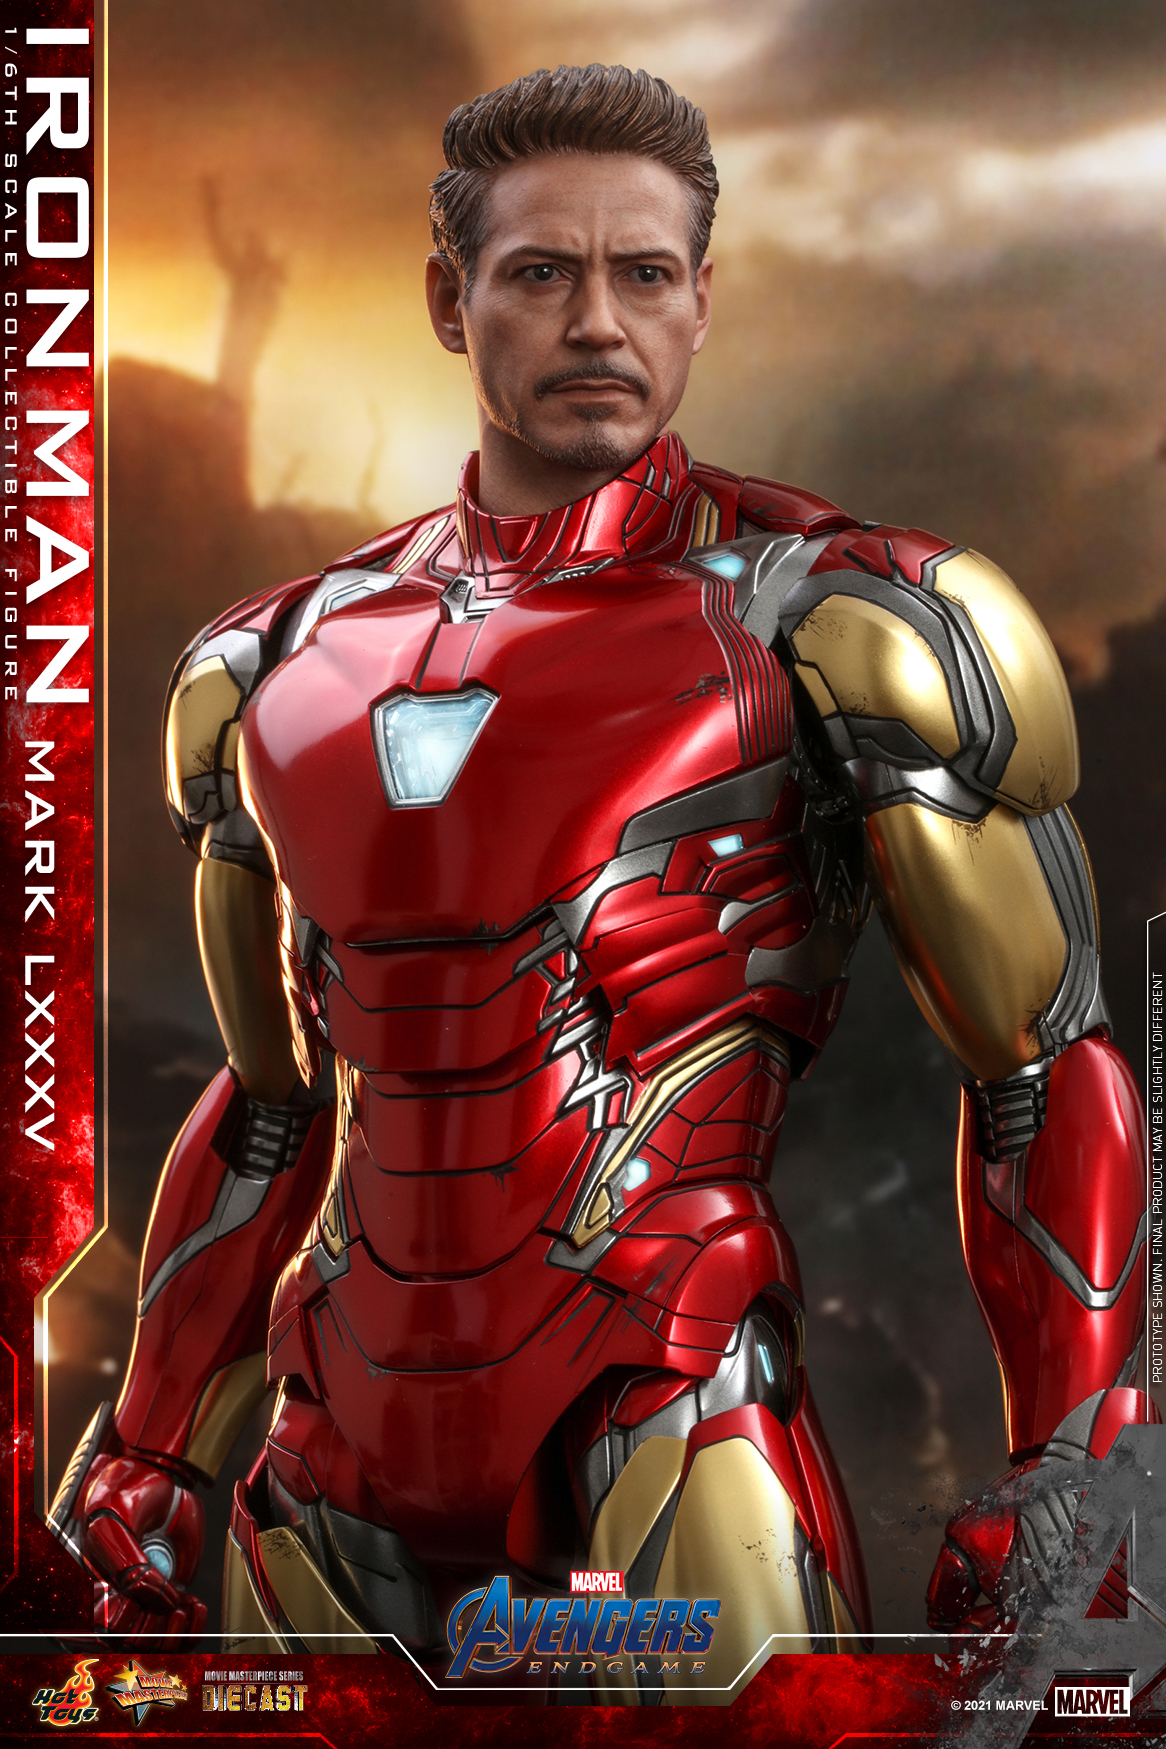 Hot Toys Avengers Endgame Iron Man Mark LXXXV collectible figure_updated head sculpt_PR3_